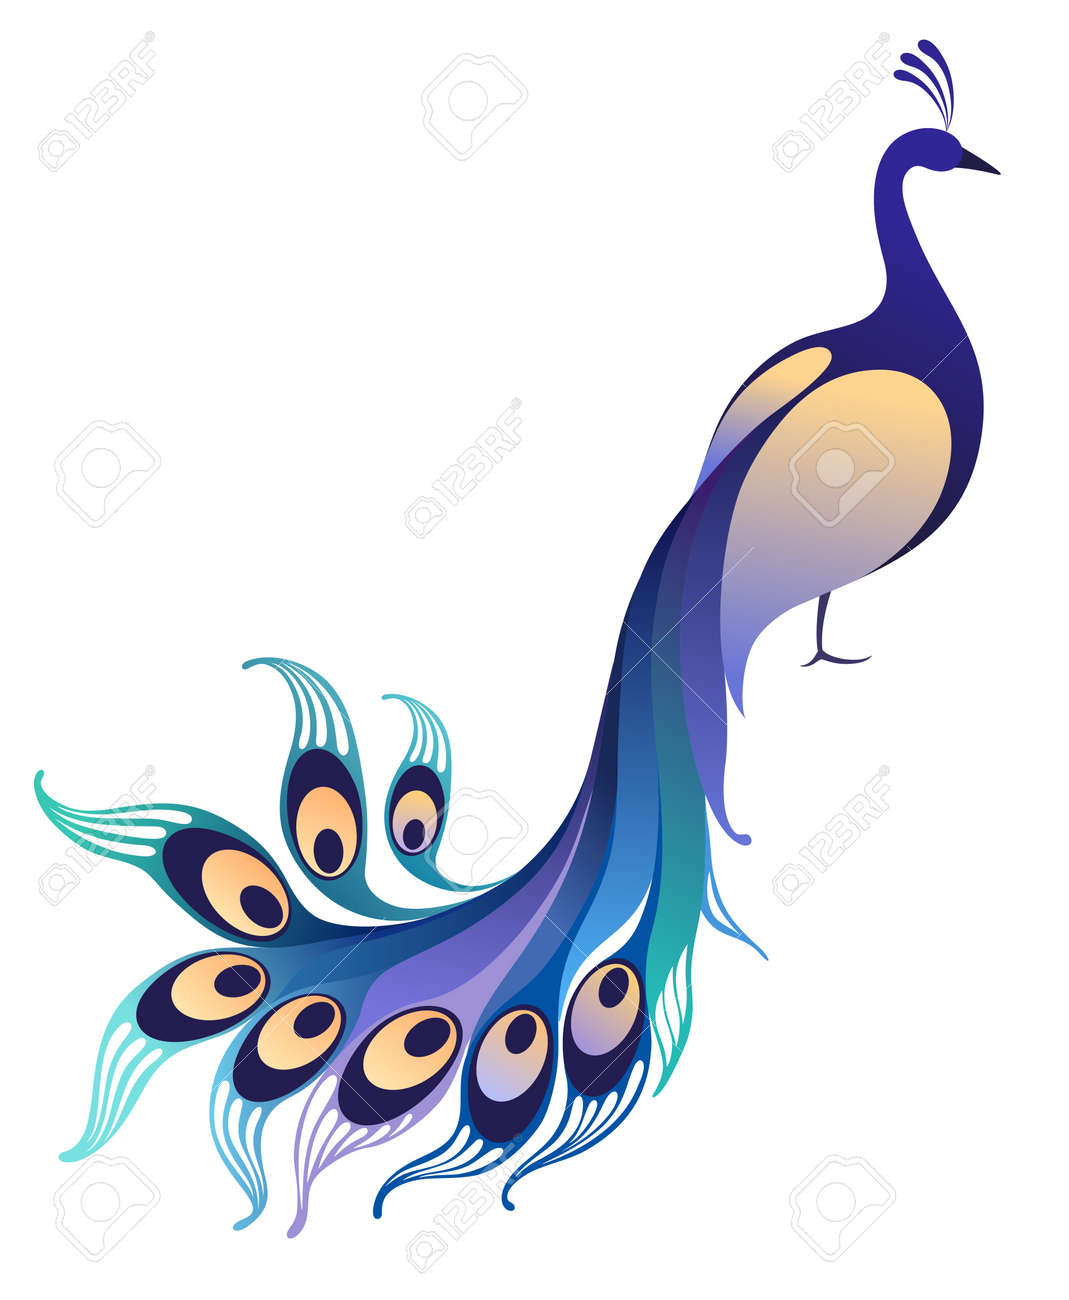 12 290 peacock stock illustrations cliparts and royalty free rh 123rf com peacock clip art for invitations peacock clipart png